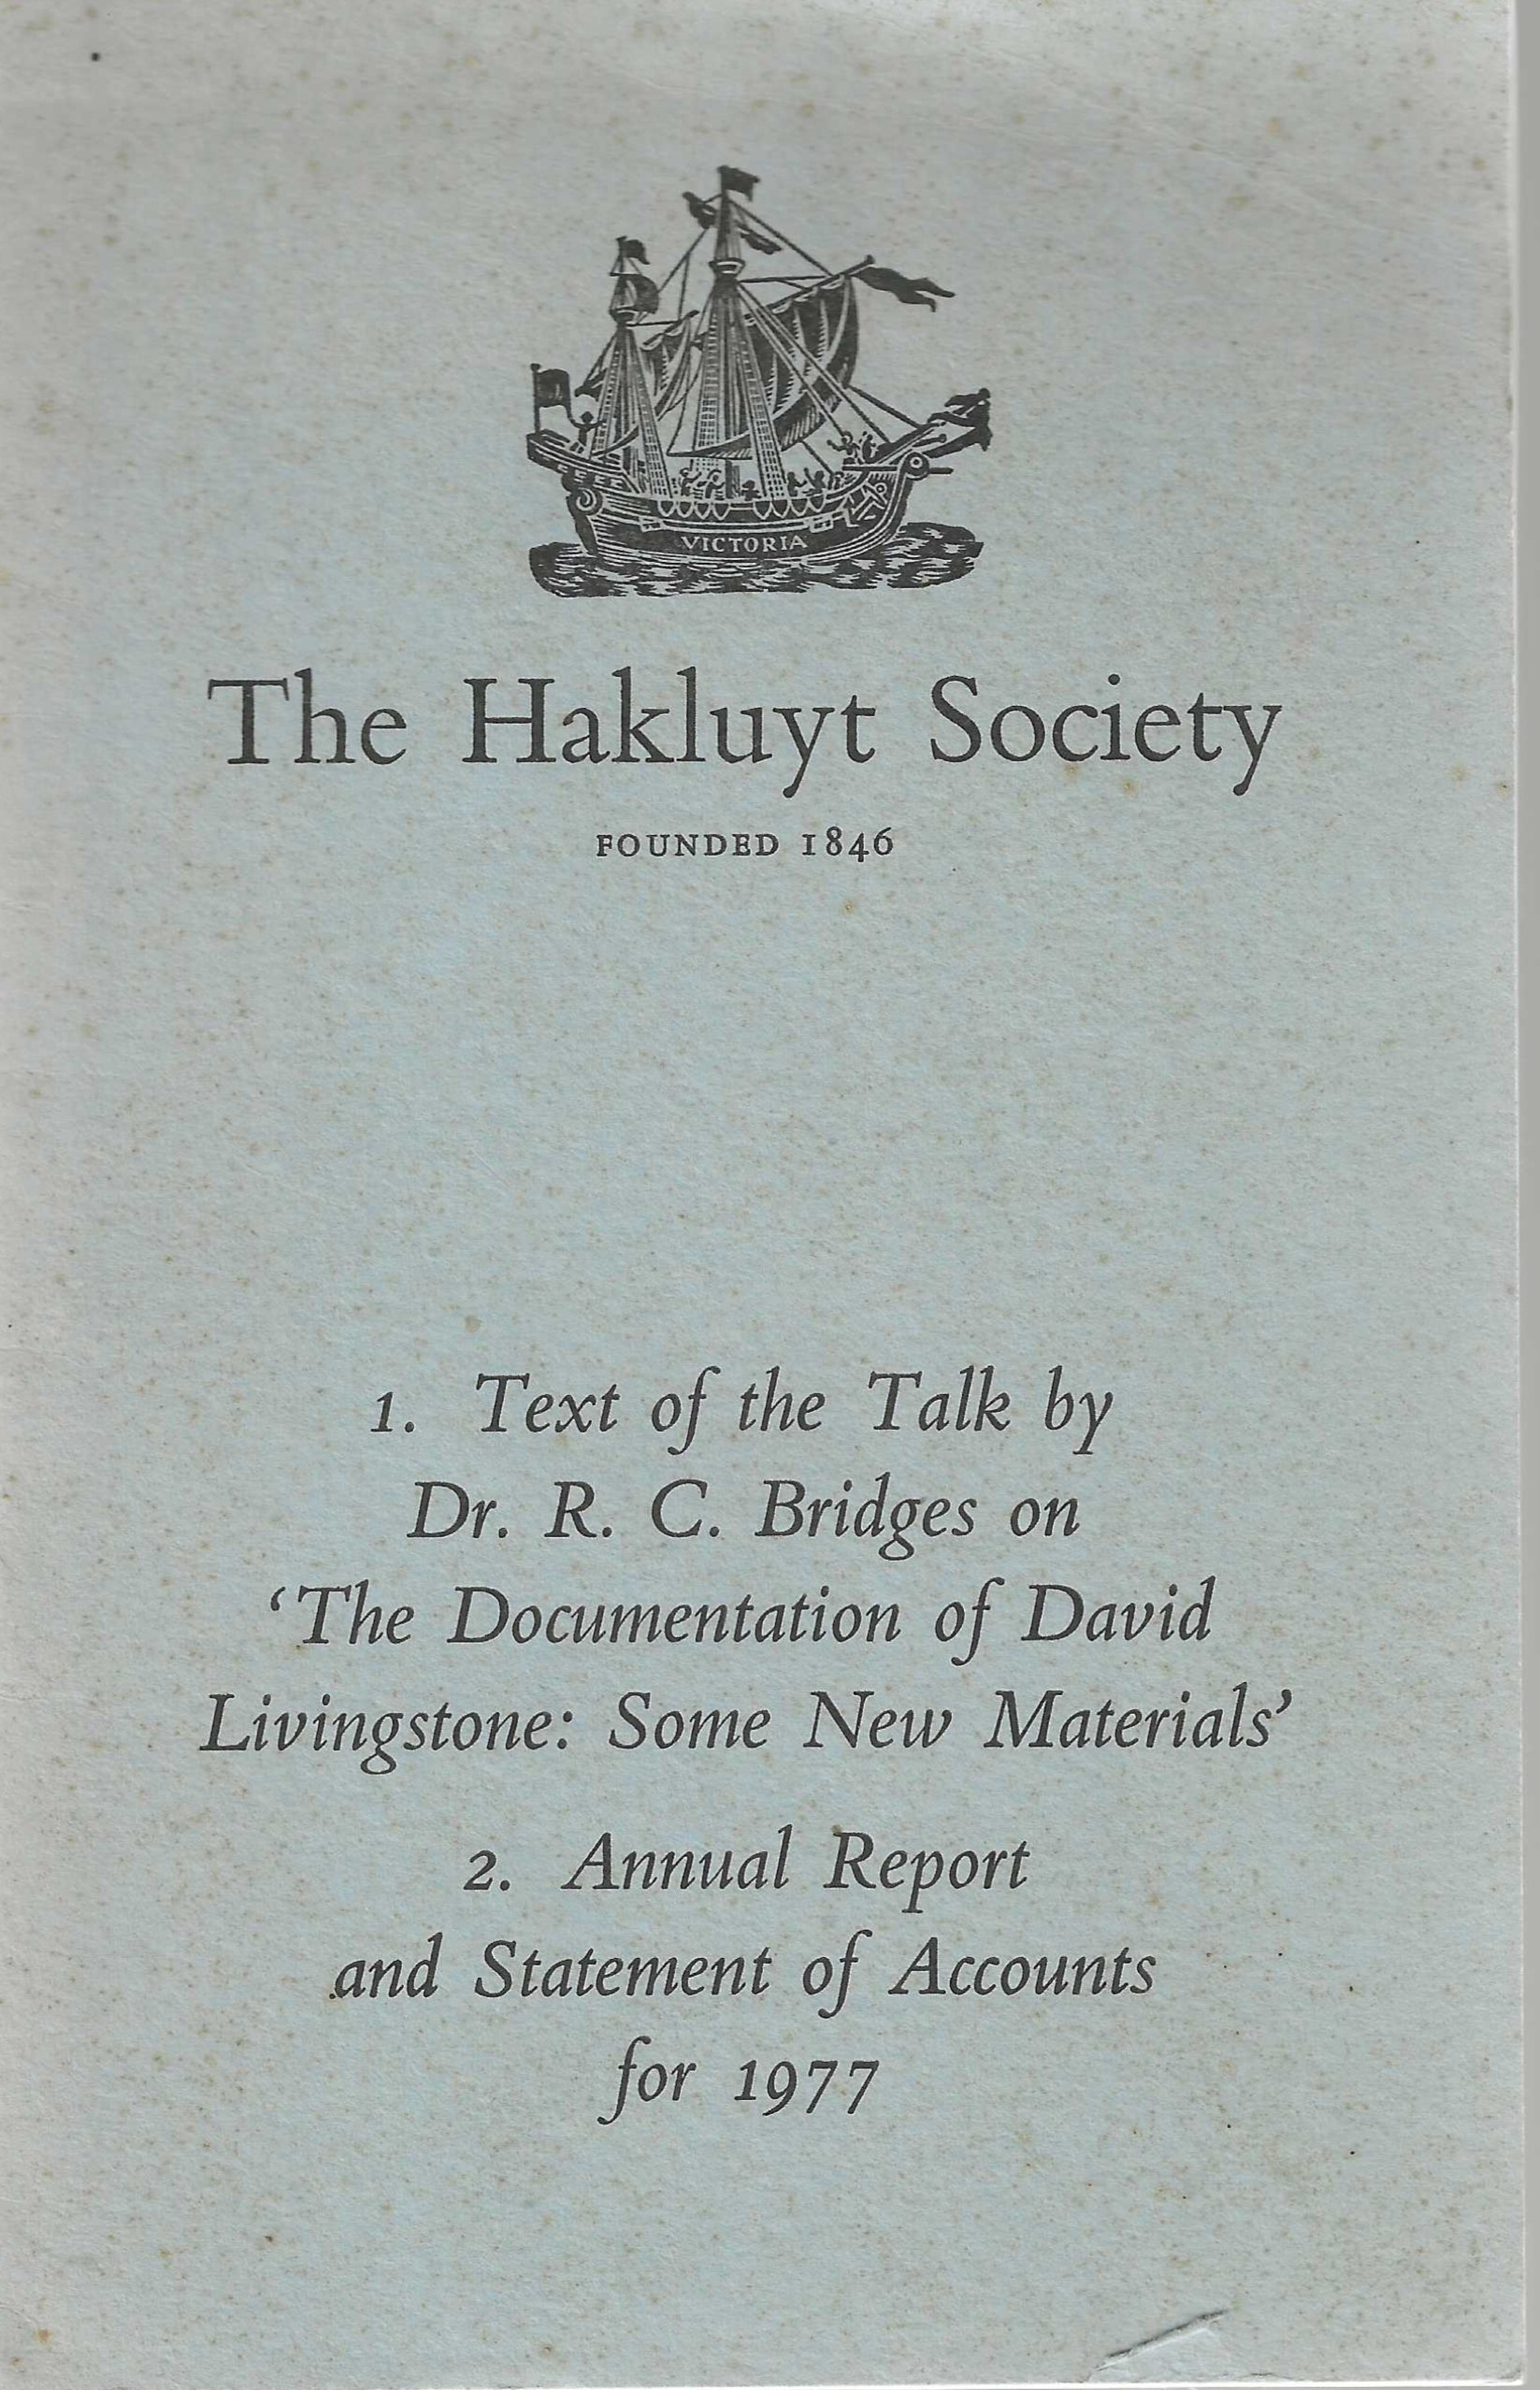 Image for Text of the Talk by Dr. R.C. Bridges 'The Documentation of David Livingstone: Some New Materials' (and) Annual Report and Statement of Accounts for 1977.